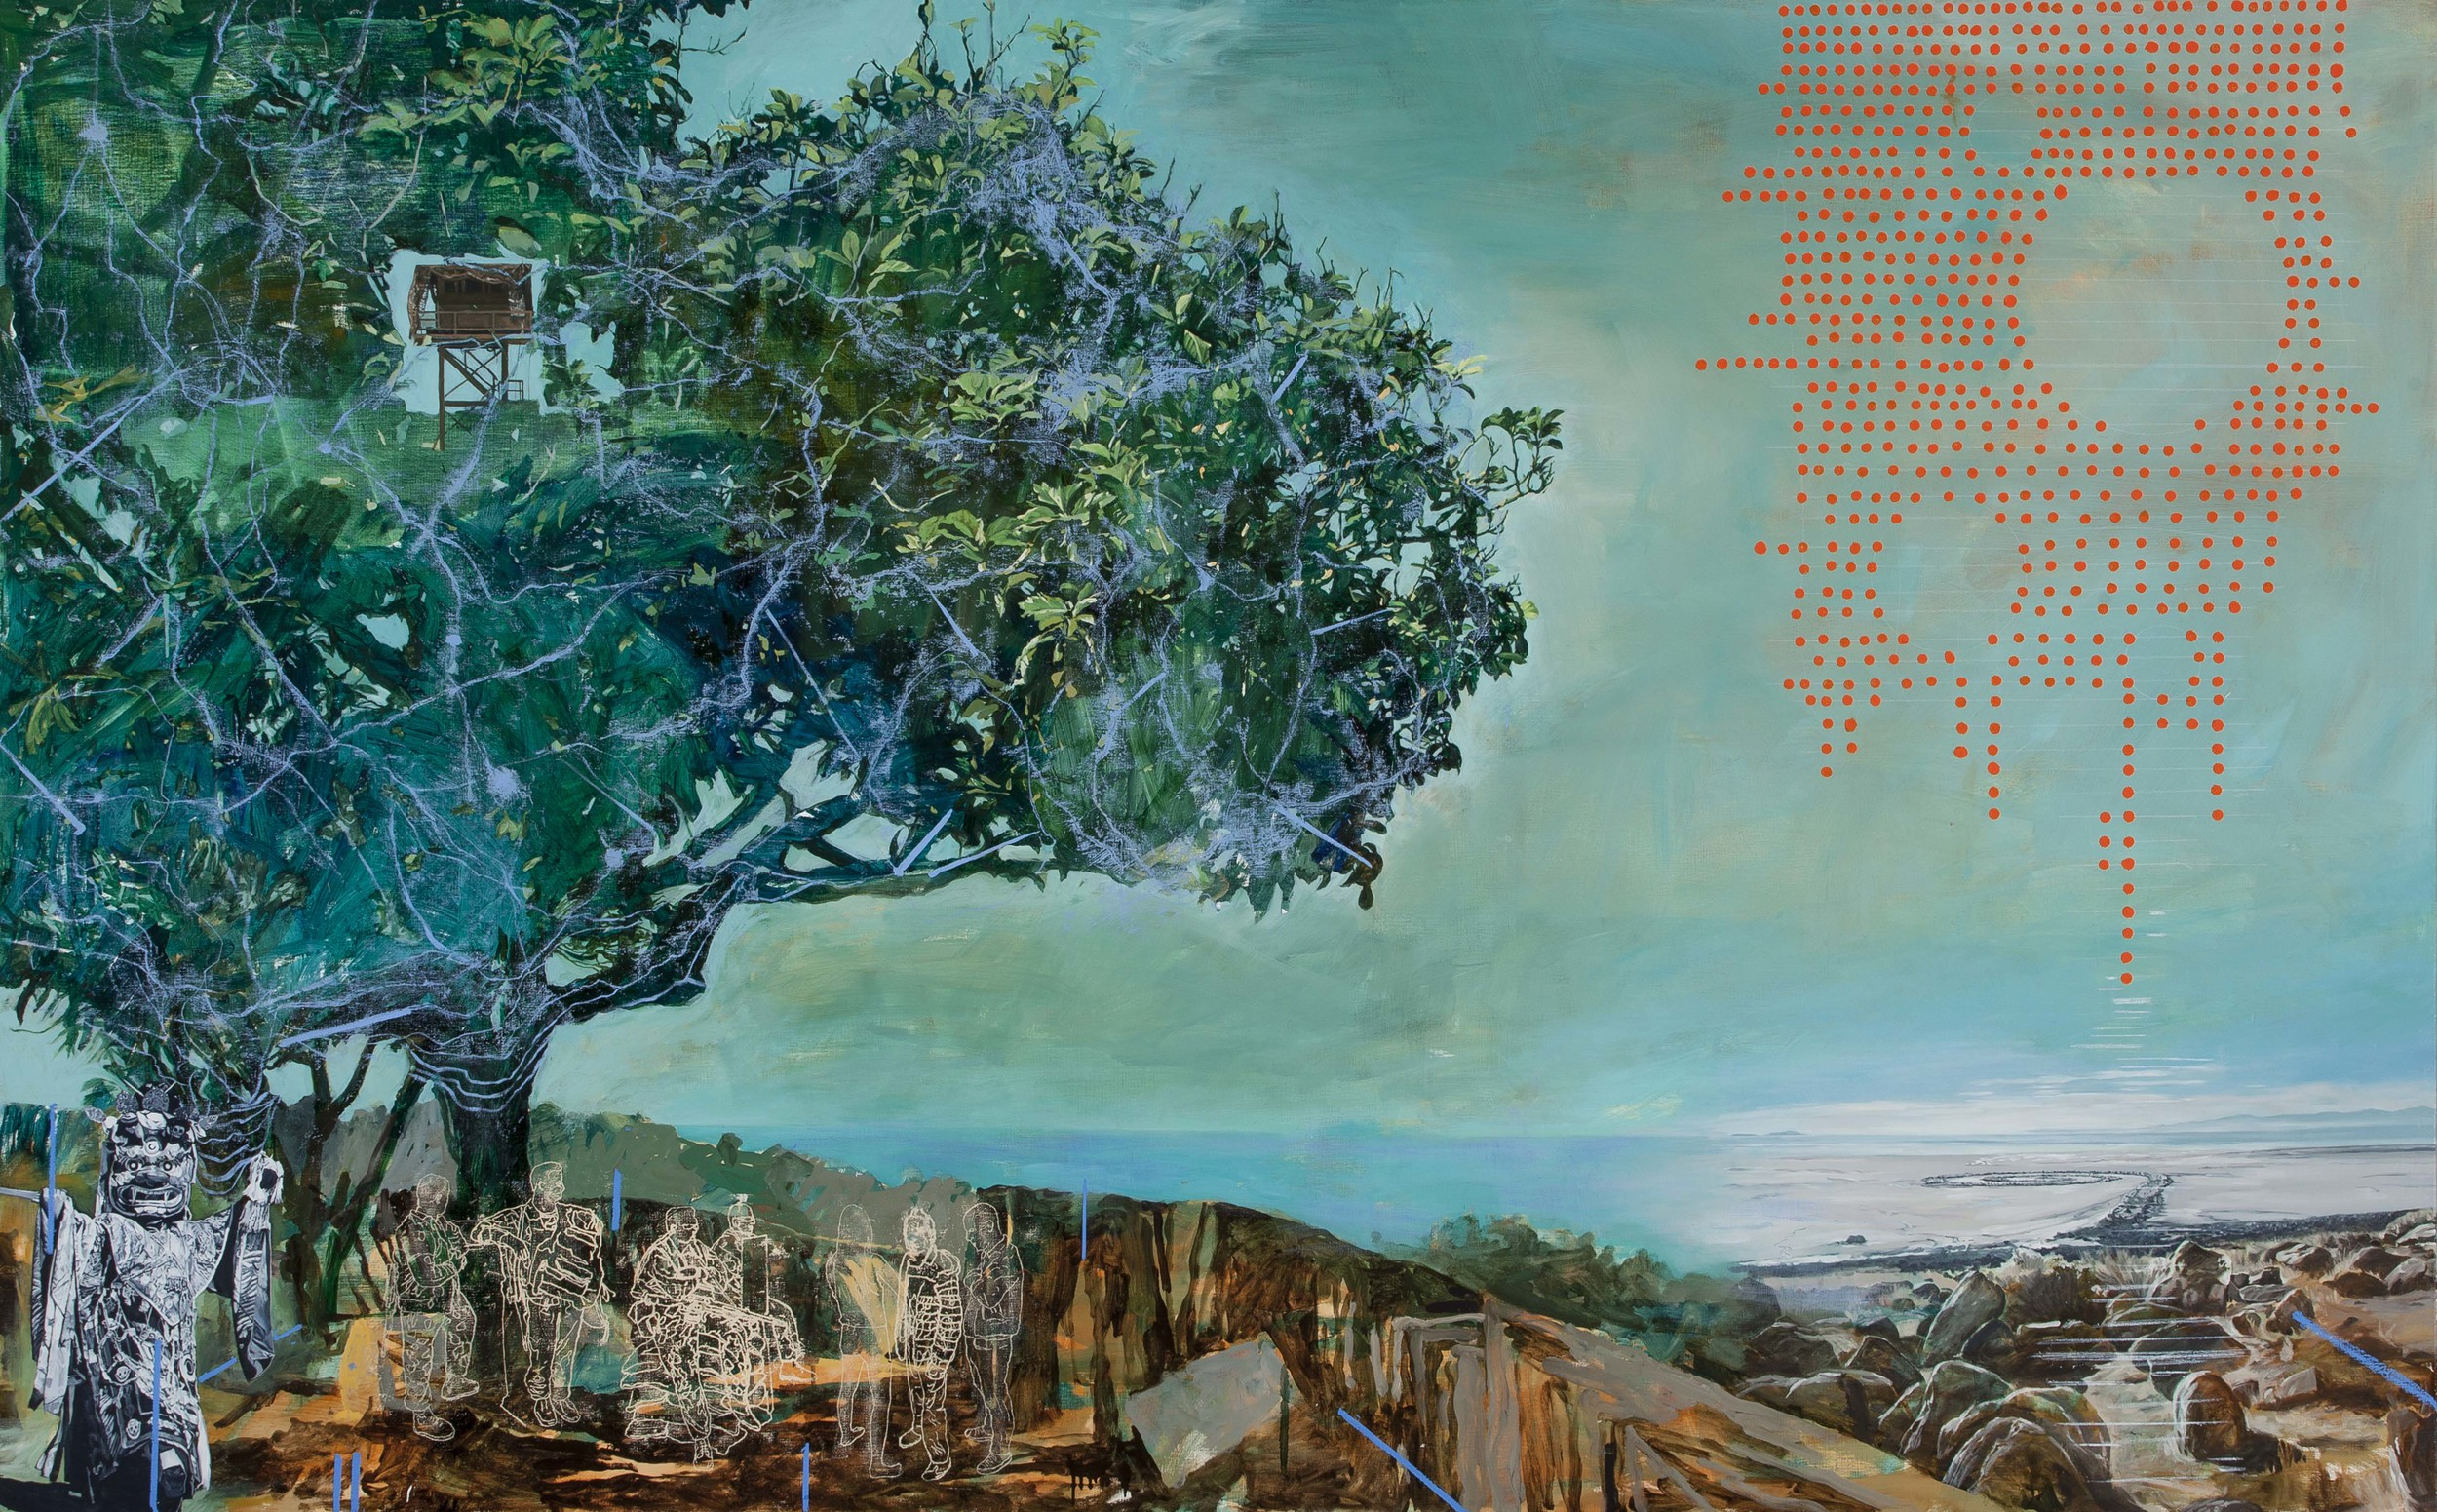 LYNDELL BROWN CHARLES GREEN    Balibo (The Fort)  2014 152.5 x 243.5 cm oil and acrylic on linen